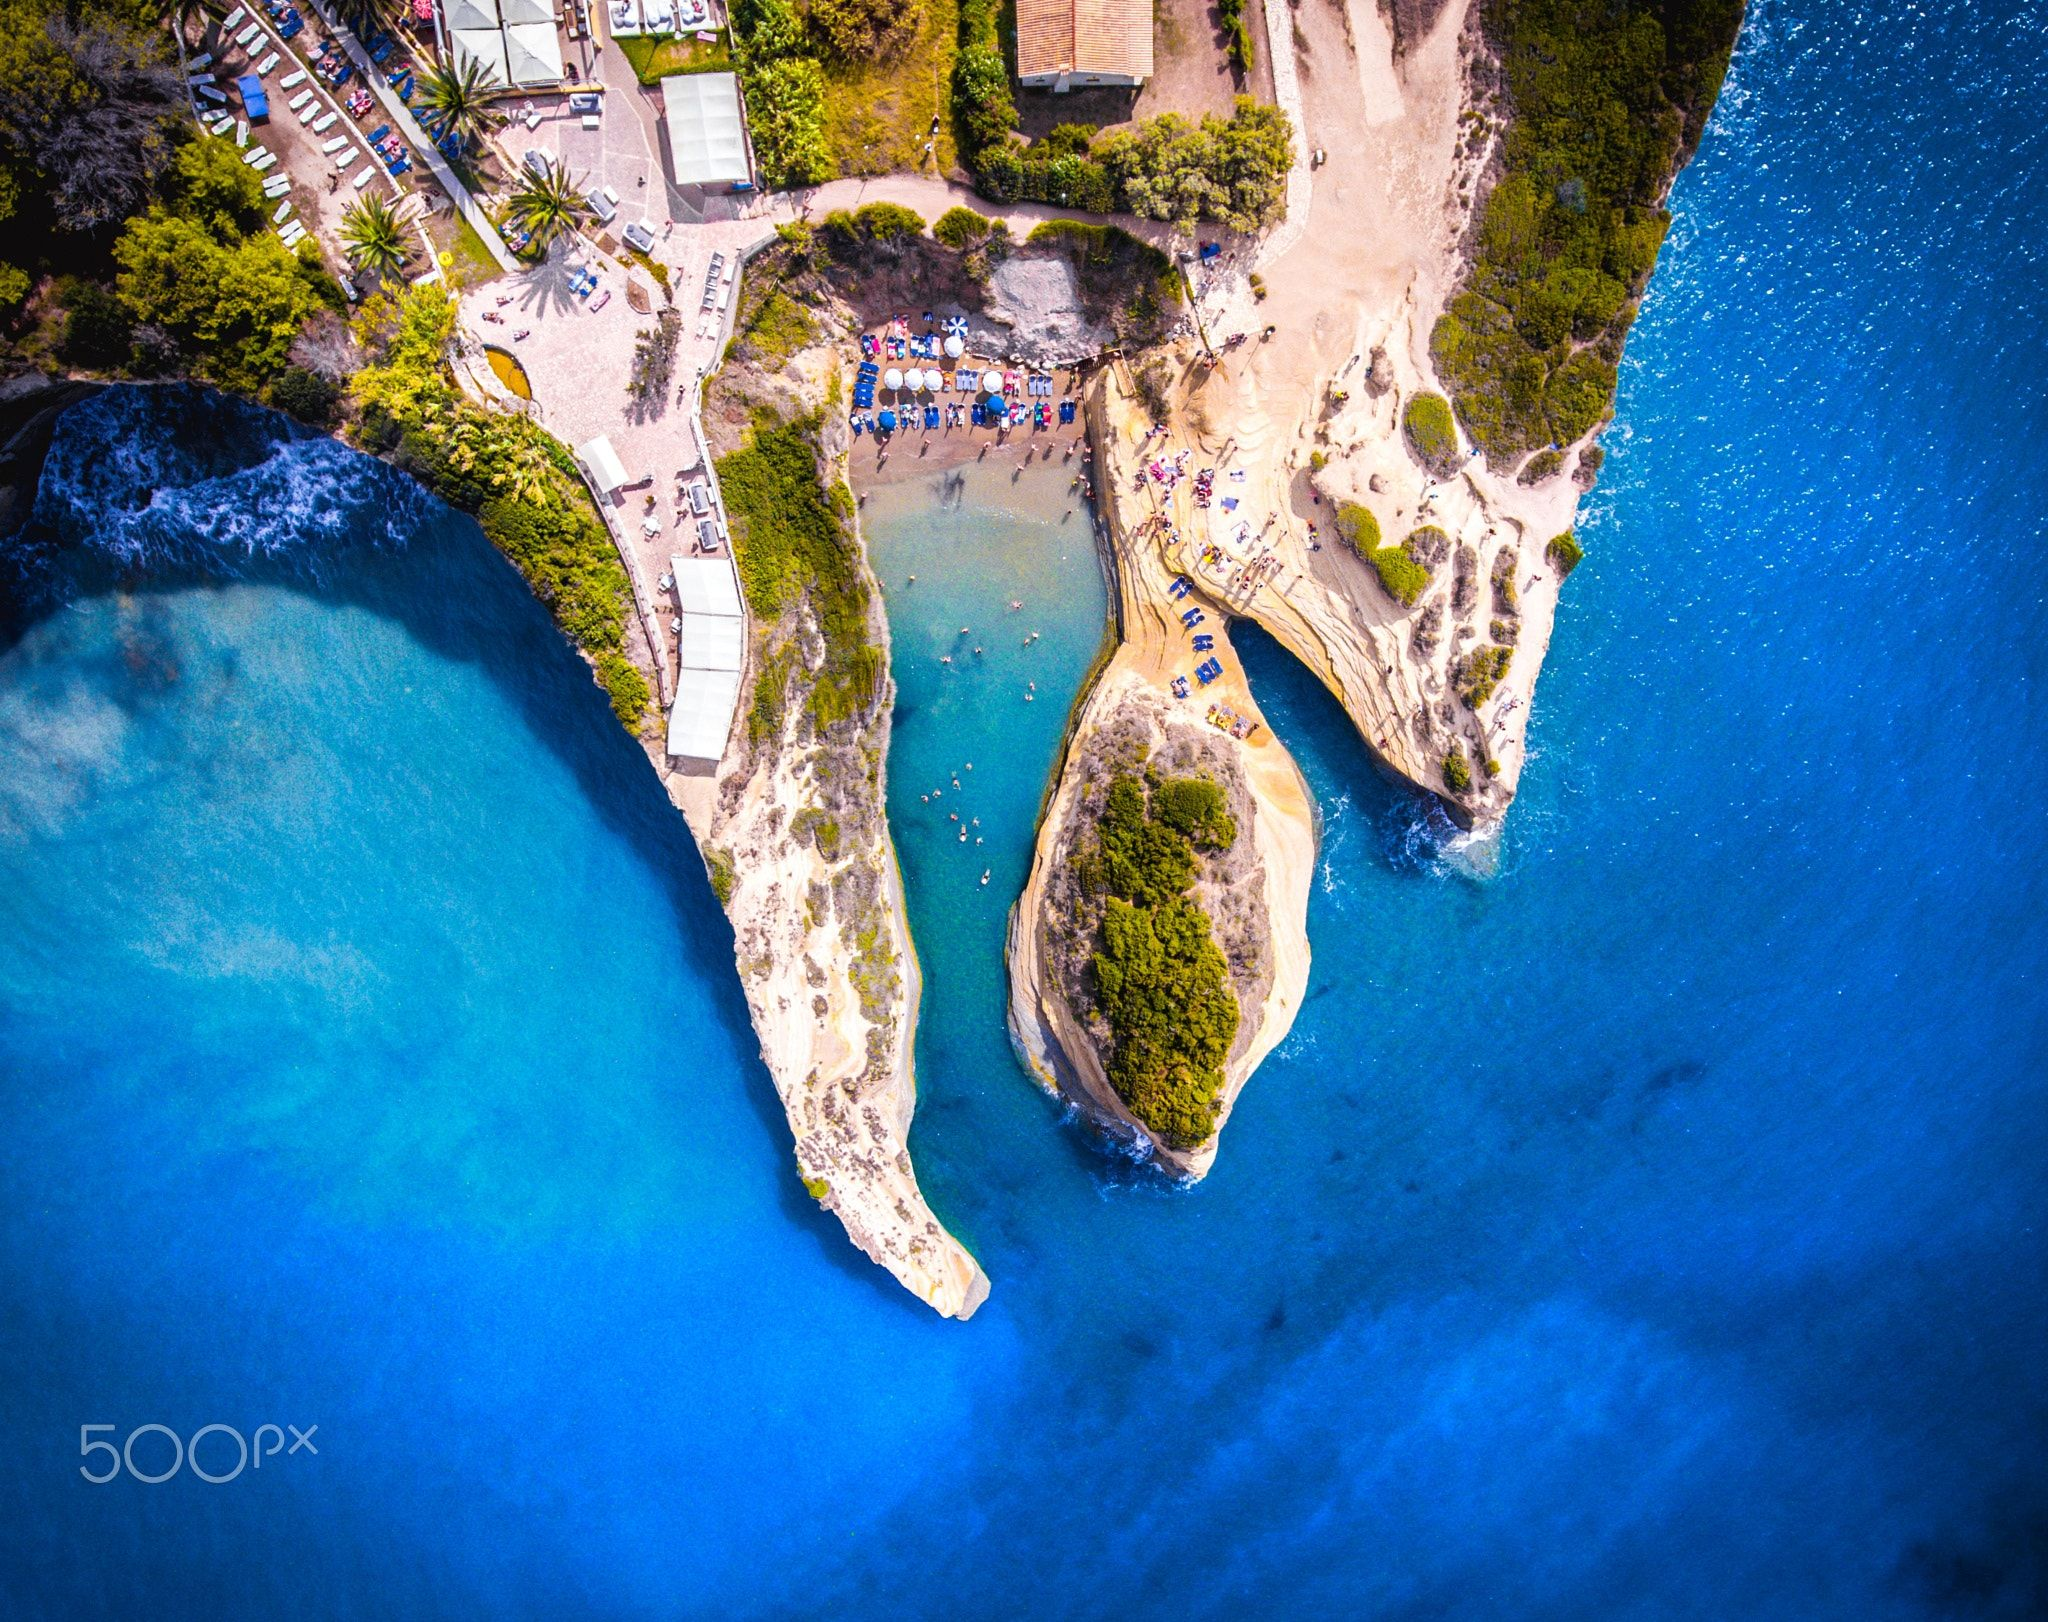 Canal D'amour, Corfu, Greece - Canal D'amour beach at Cape Sidari is the best known landmark of Corfu Island. Aerial view from a DJI Phantom 4 drone.